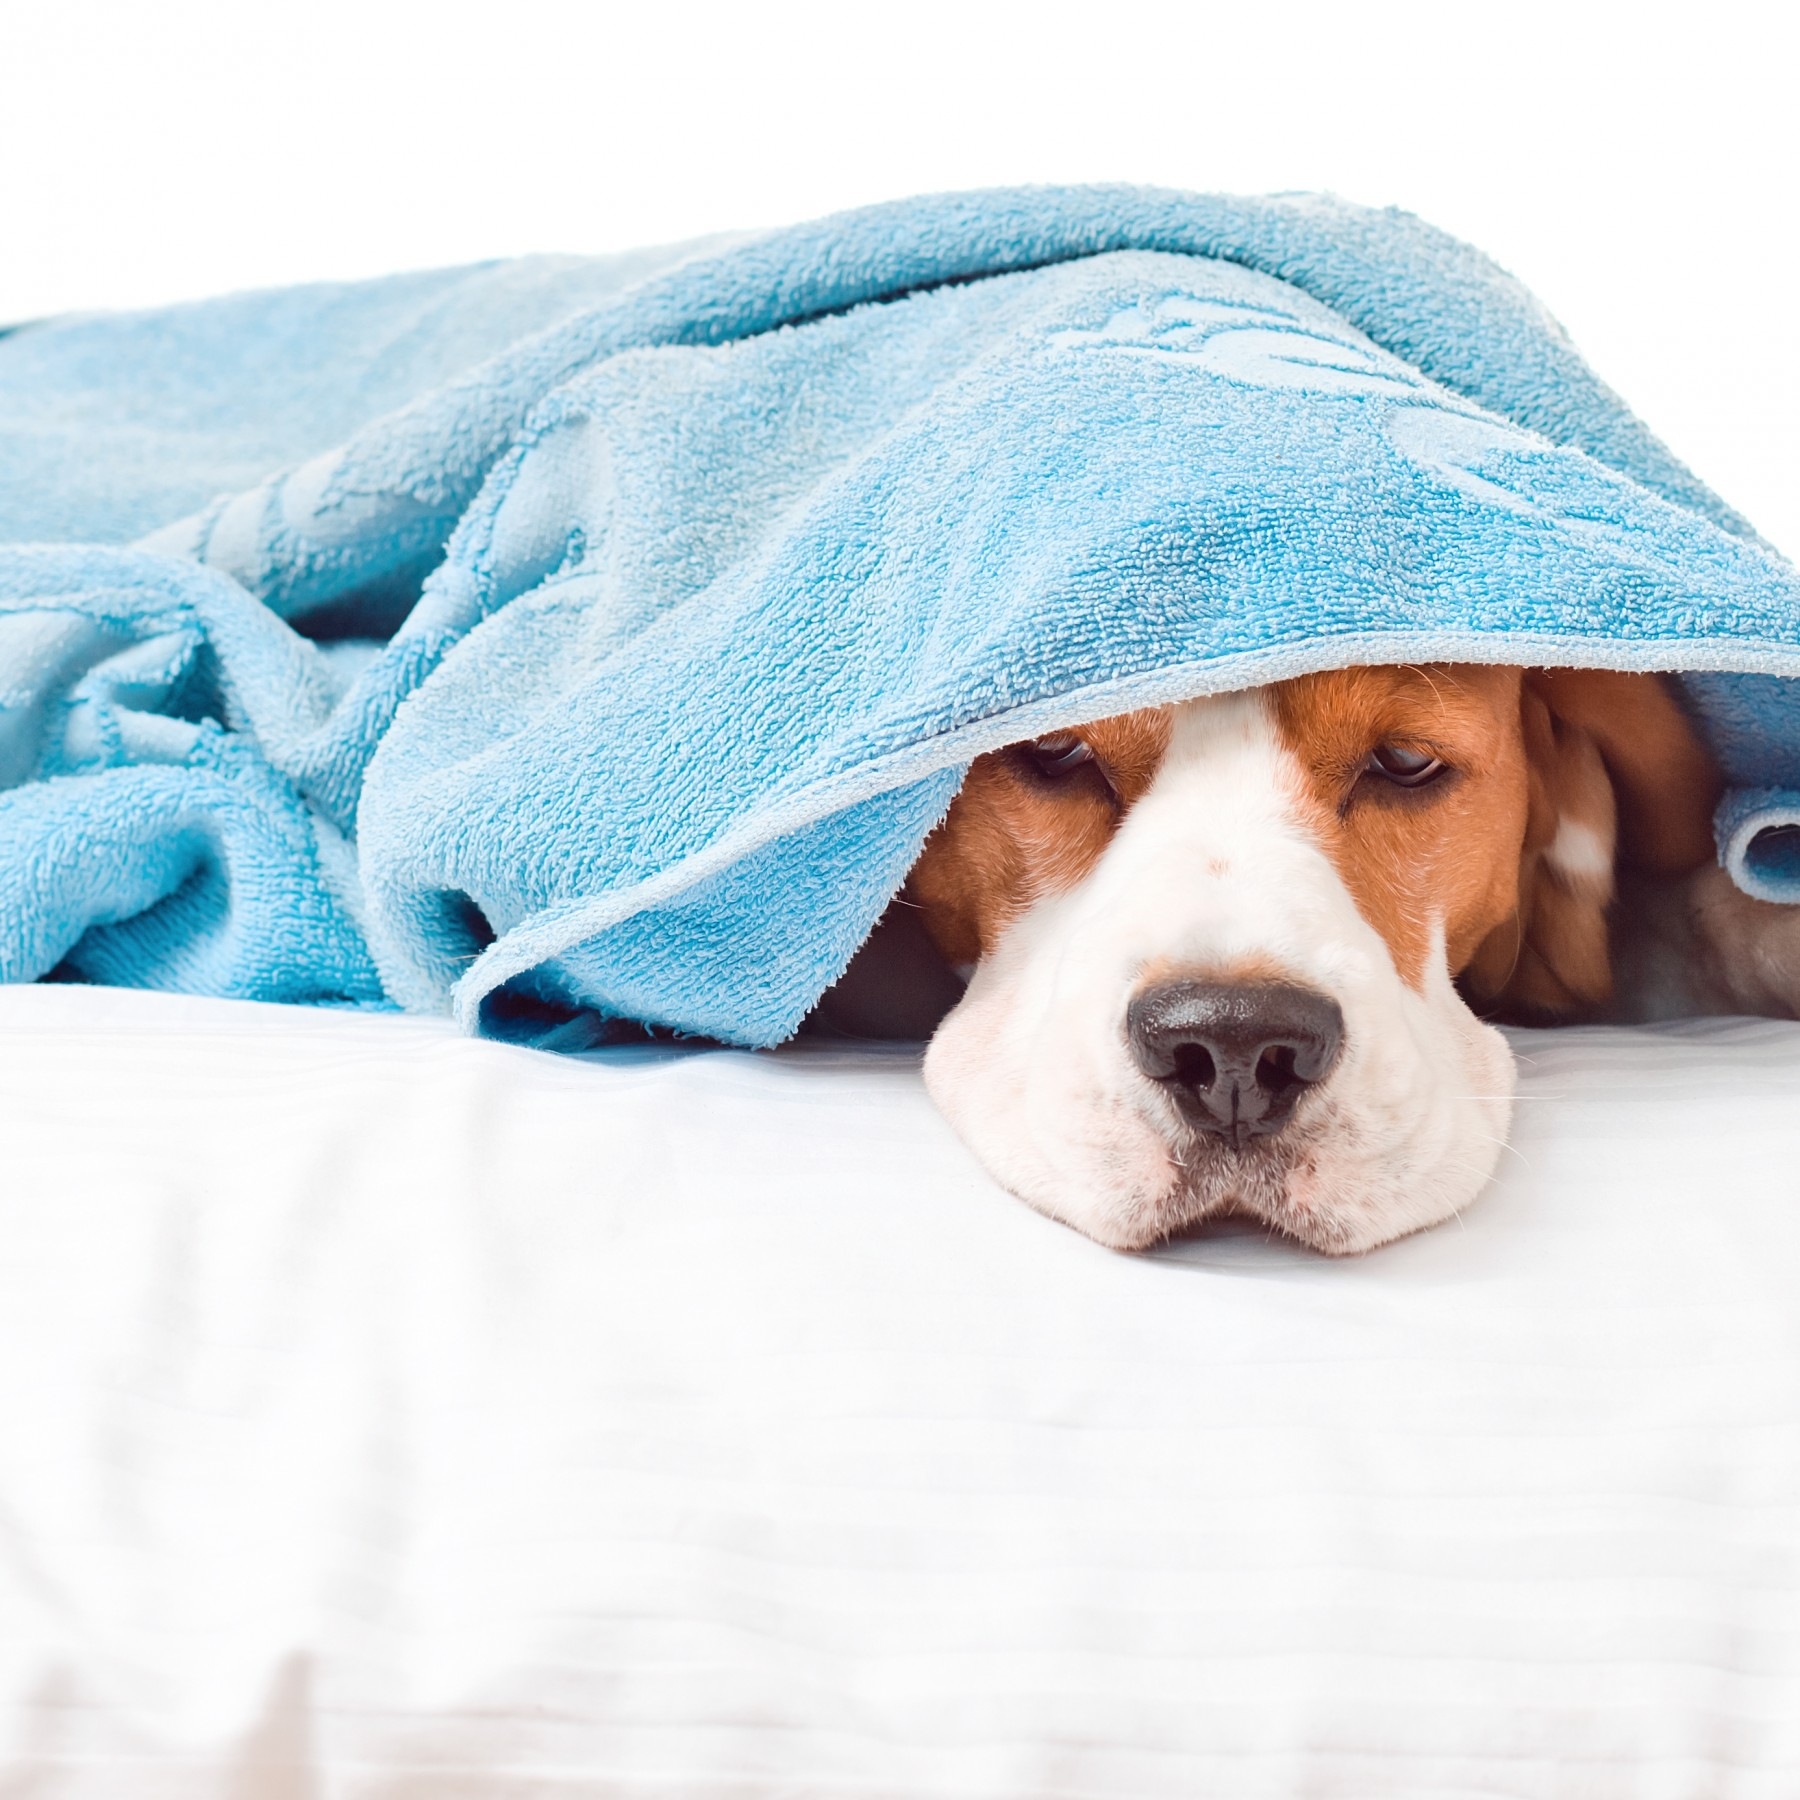 10 Dogs Who Are Ready for Bedtime